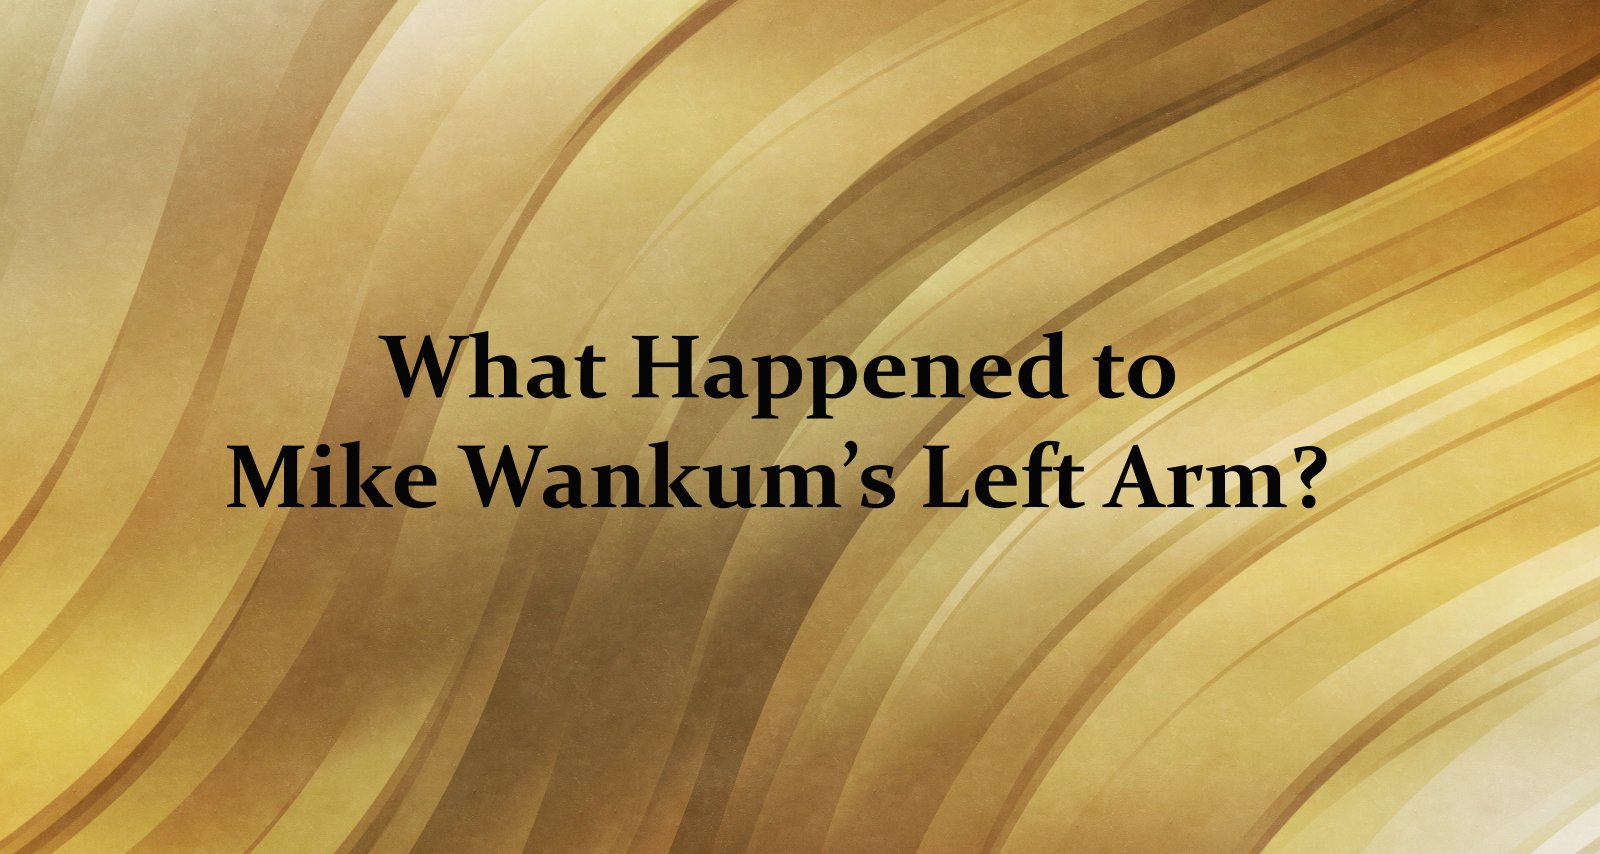 What Happened to Mike Wankums Left Arm